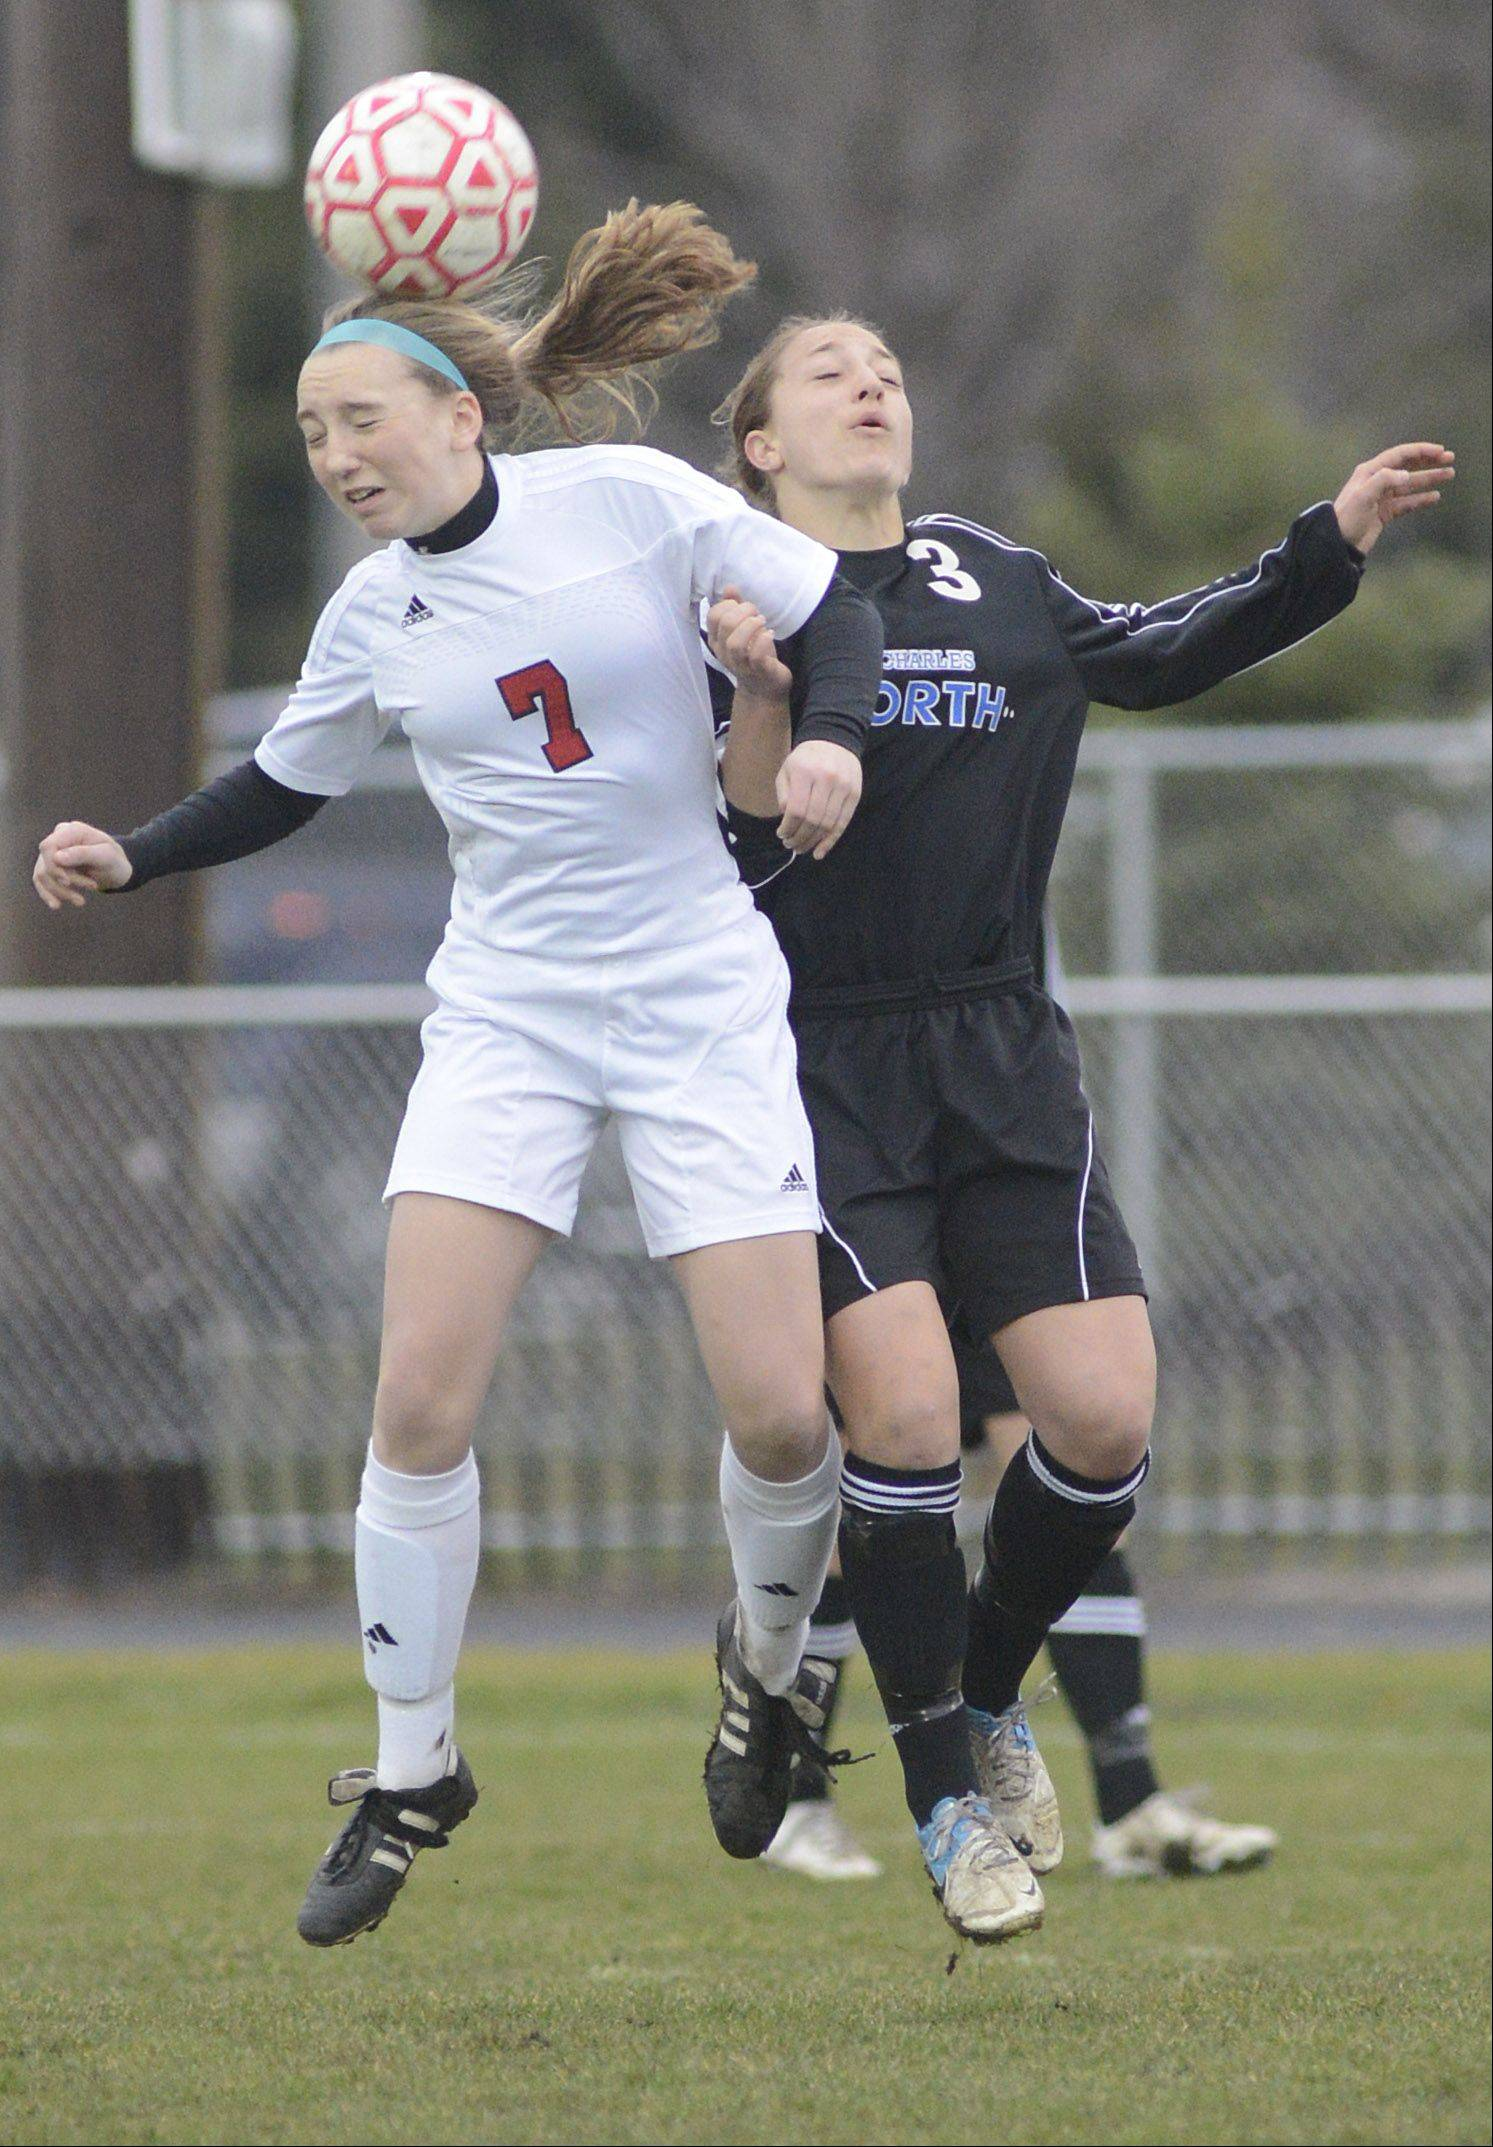 Batavia�s Alexis Bryl and St. Charles North�s Alex Gage both lead to head the ball in the first half on Thursday, April 11.